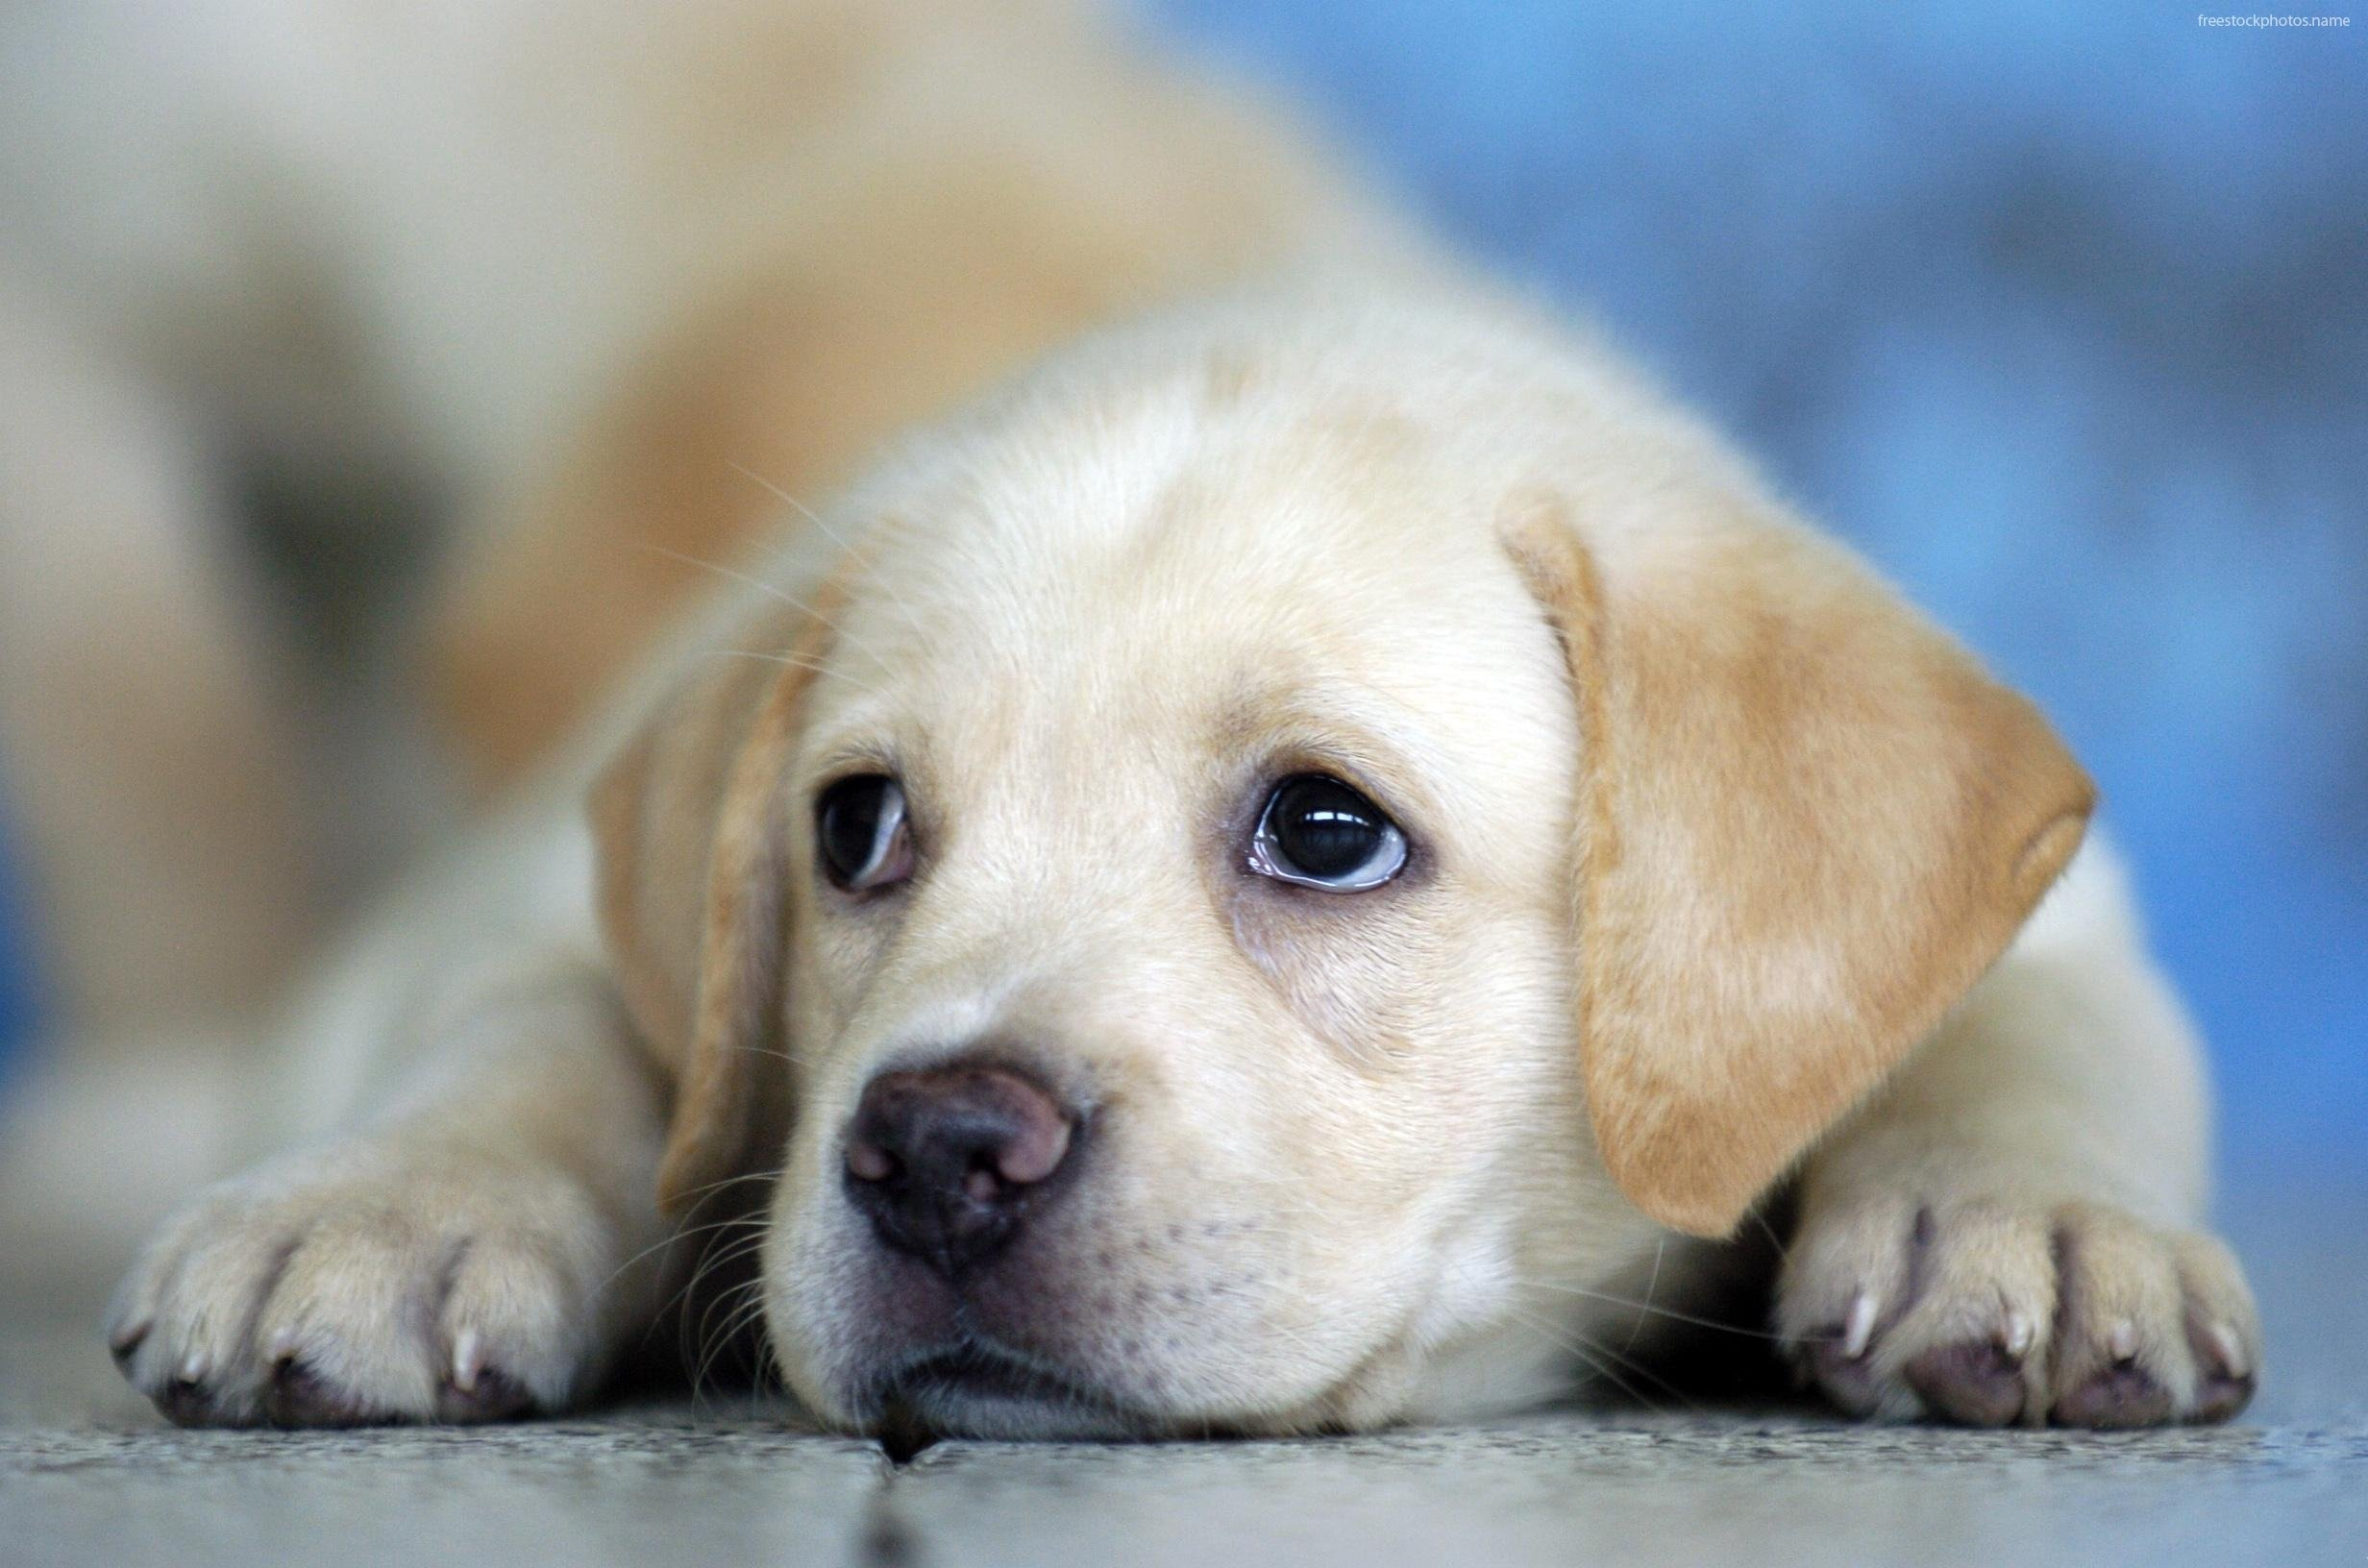 Free Download Cute Baby Puppies Wallpapers Hd Wallpaper Area Hd Wallpapers 2464x1632 For Your Desktop Mobile Tablet Explore 47 Baby Dog Wallpapers Cute Puppies Wallpapers Cute Cats And Dogs